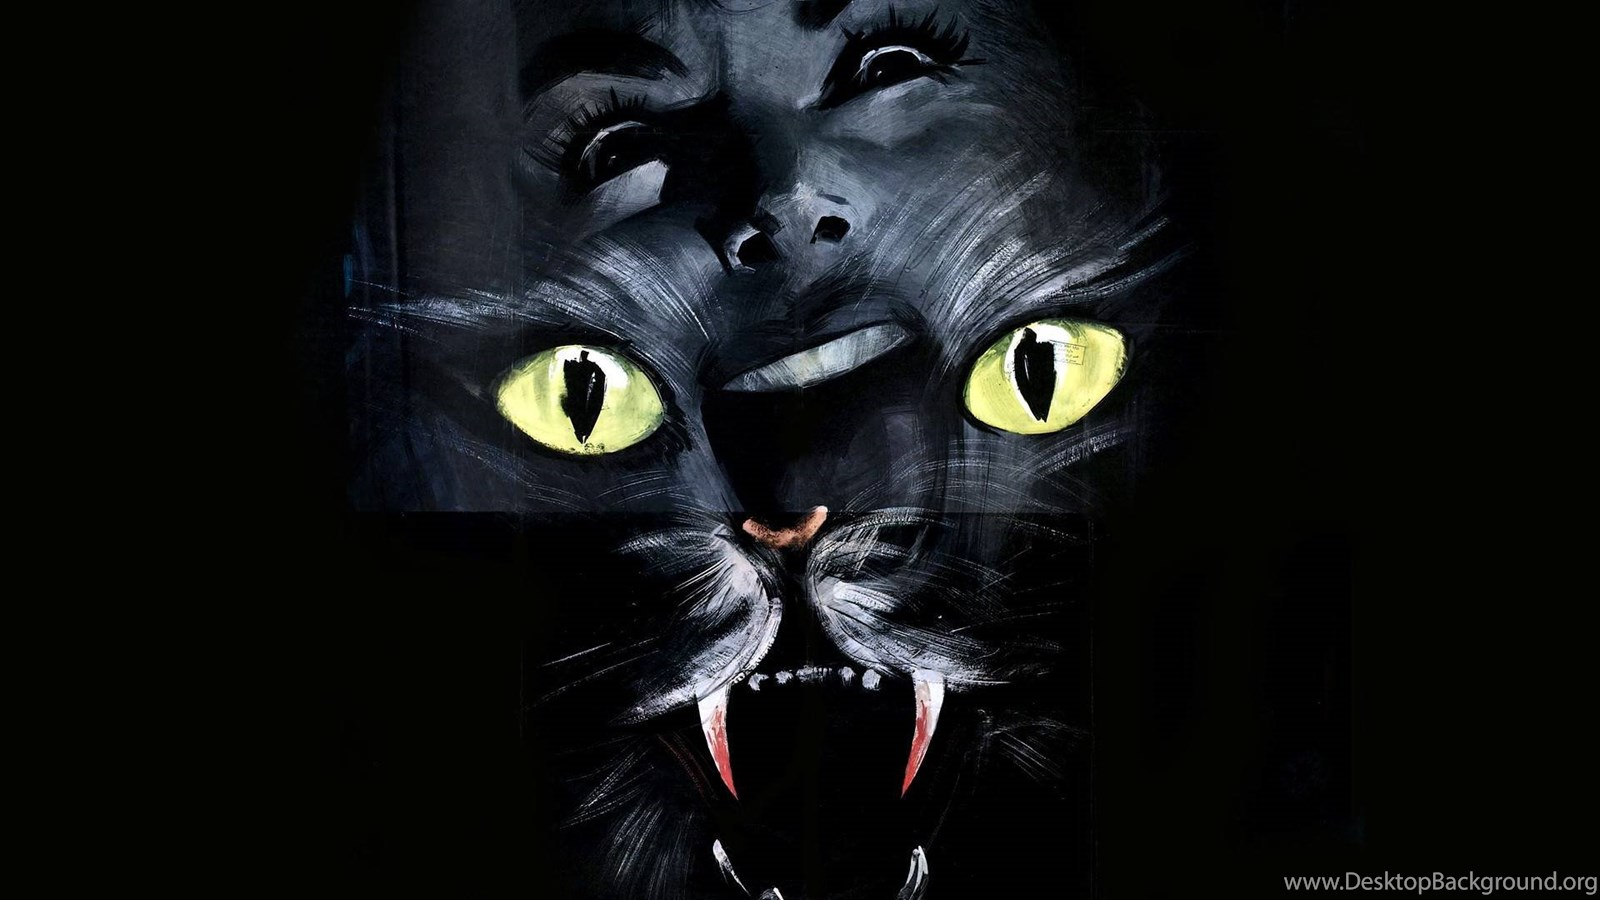 The Cat O Nine Tails Wallpaper Giallo Wallpapers Desktop Background